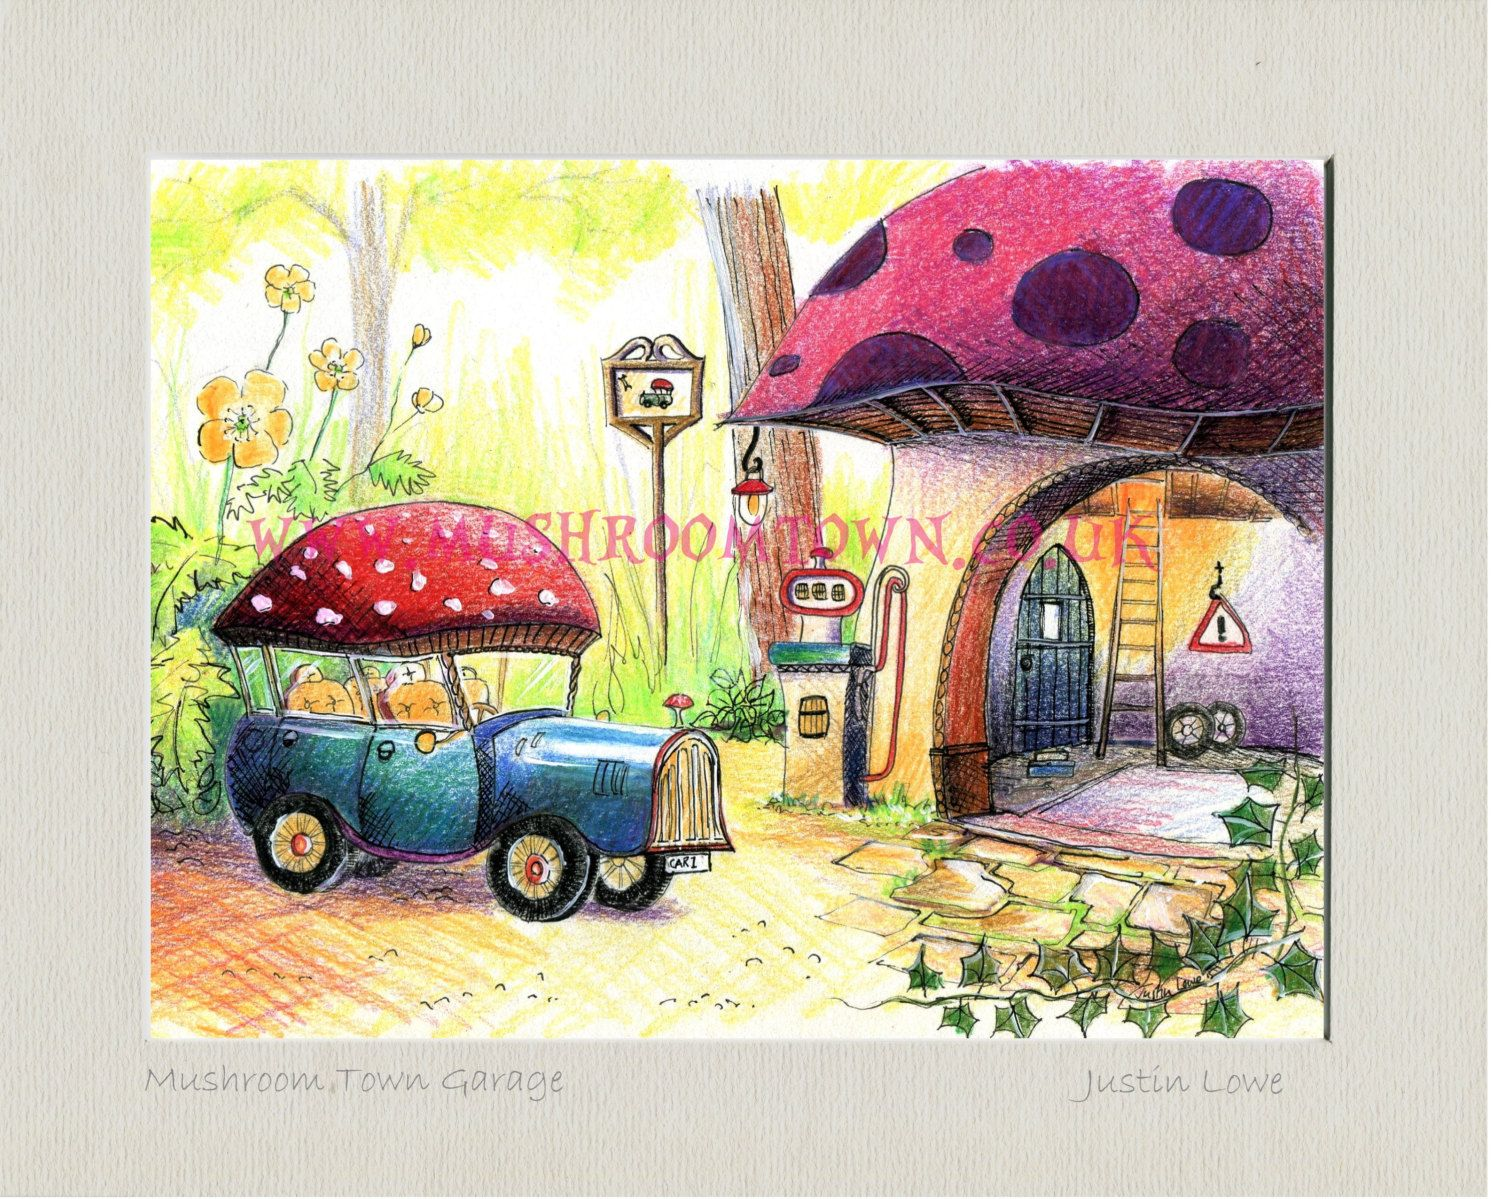 Items Similar To Mushroom Town Garage Signed Titled Mounted Print 10 X 8 Inch Self Frame On Etsy Fairy Coloring Stuffed Mushrooms Cool Art